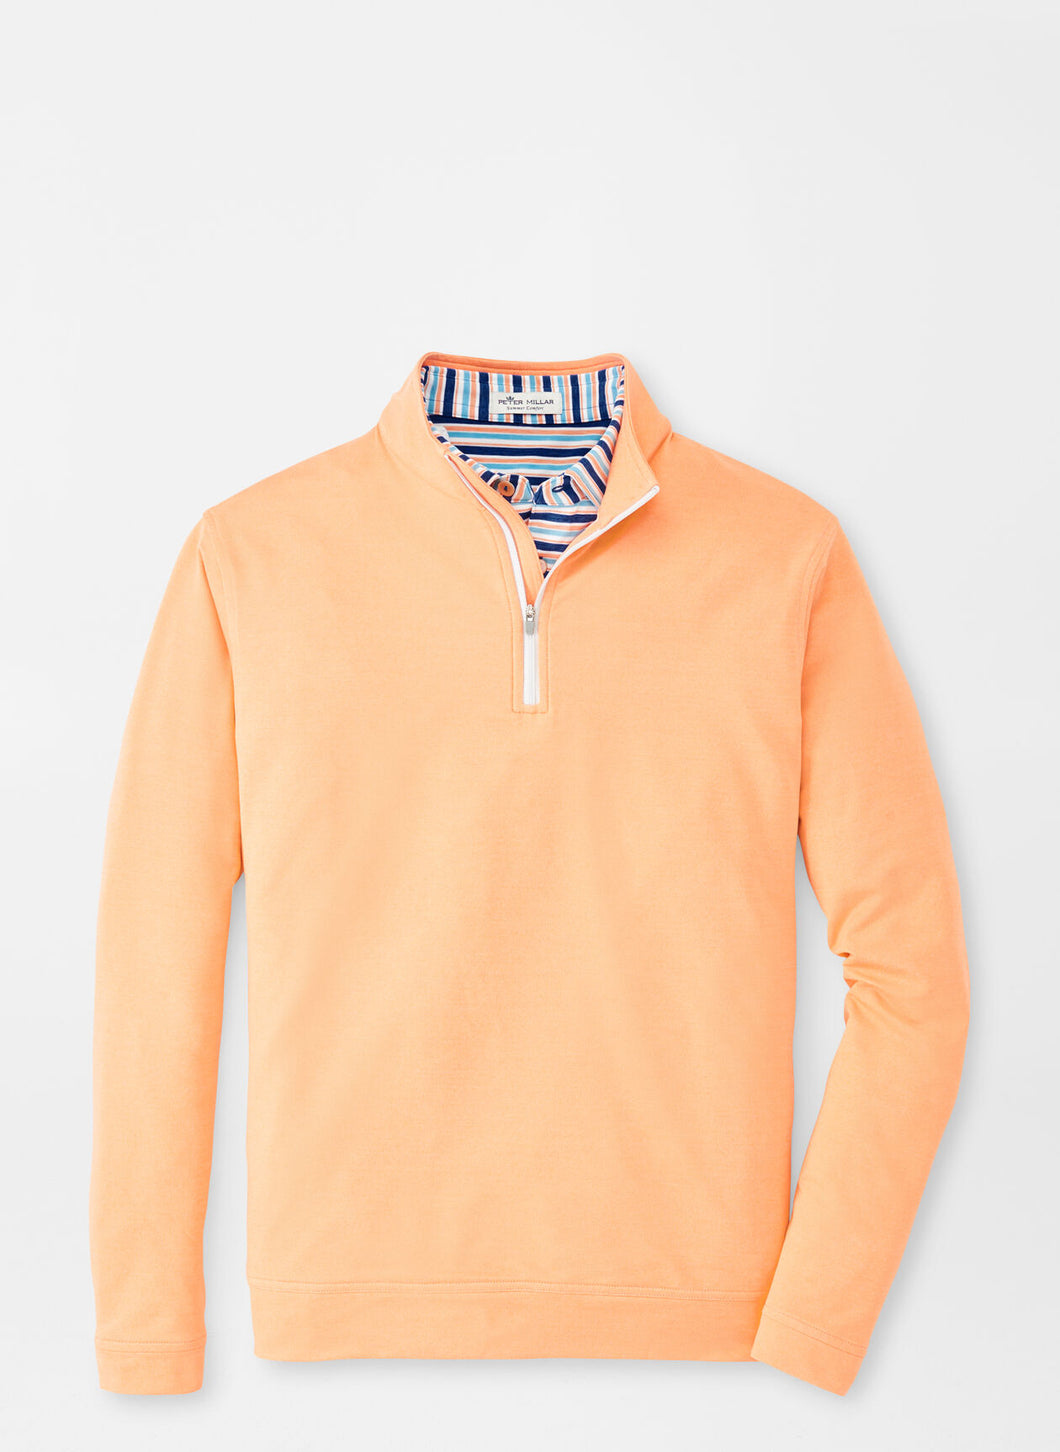 Peter Millar Melange Perth Performance Pullover in Orange Nectar